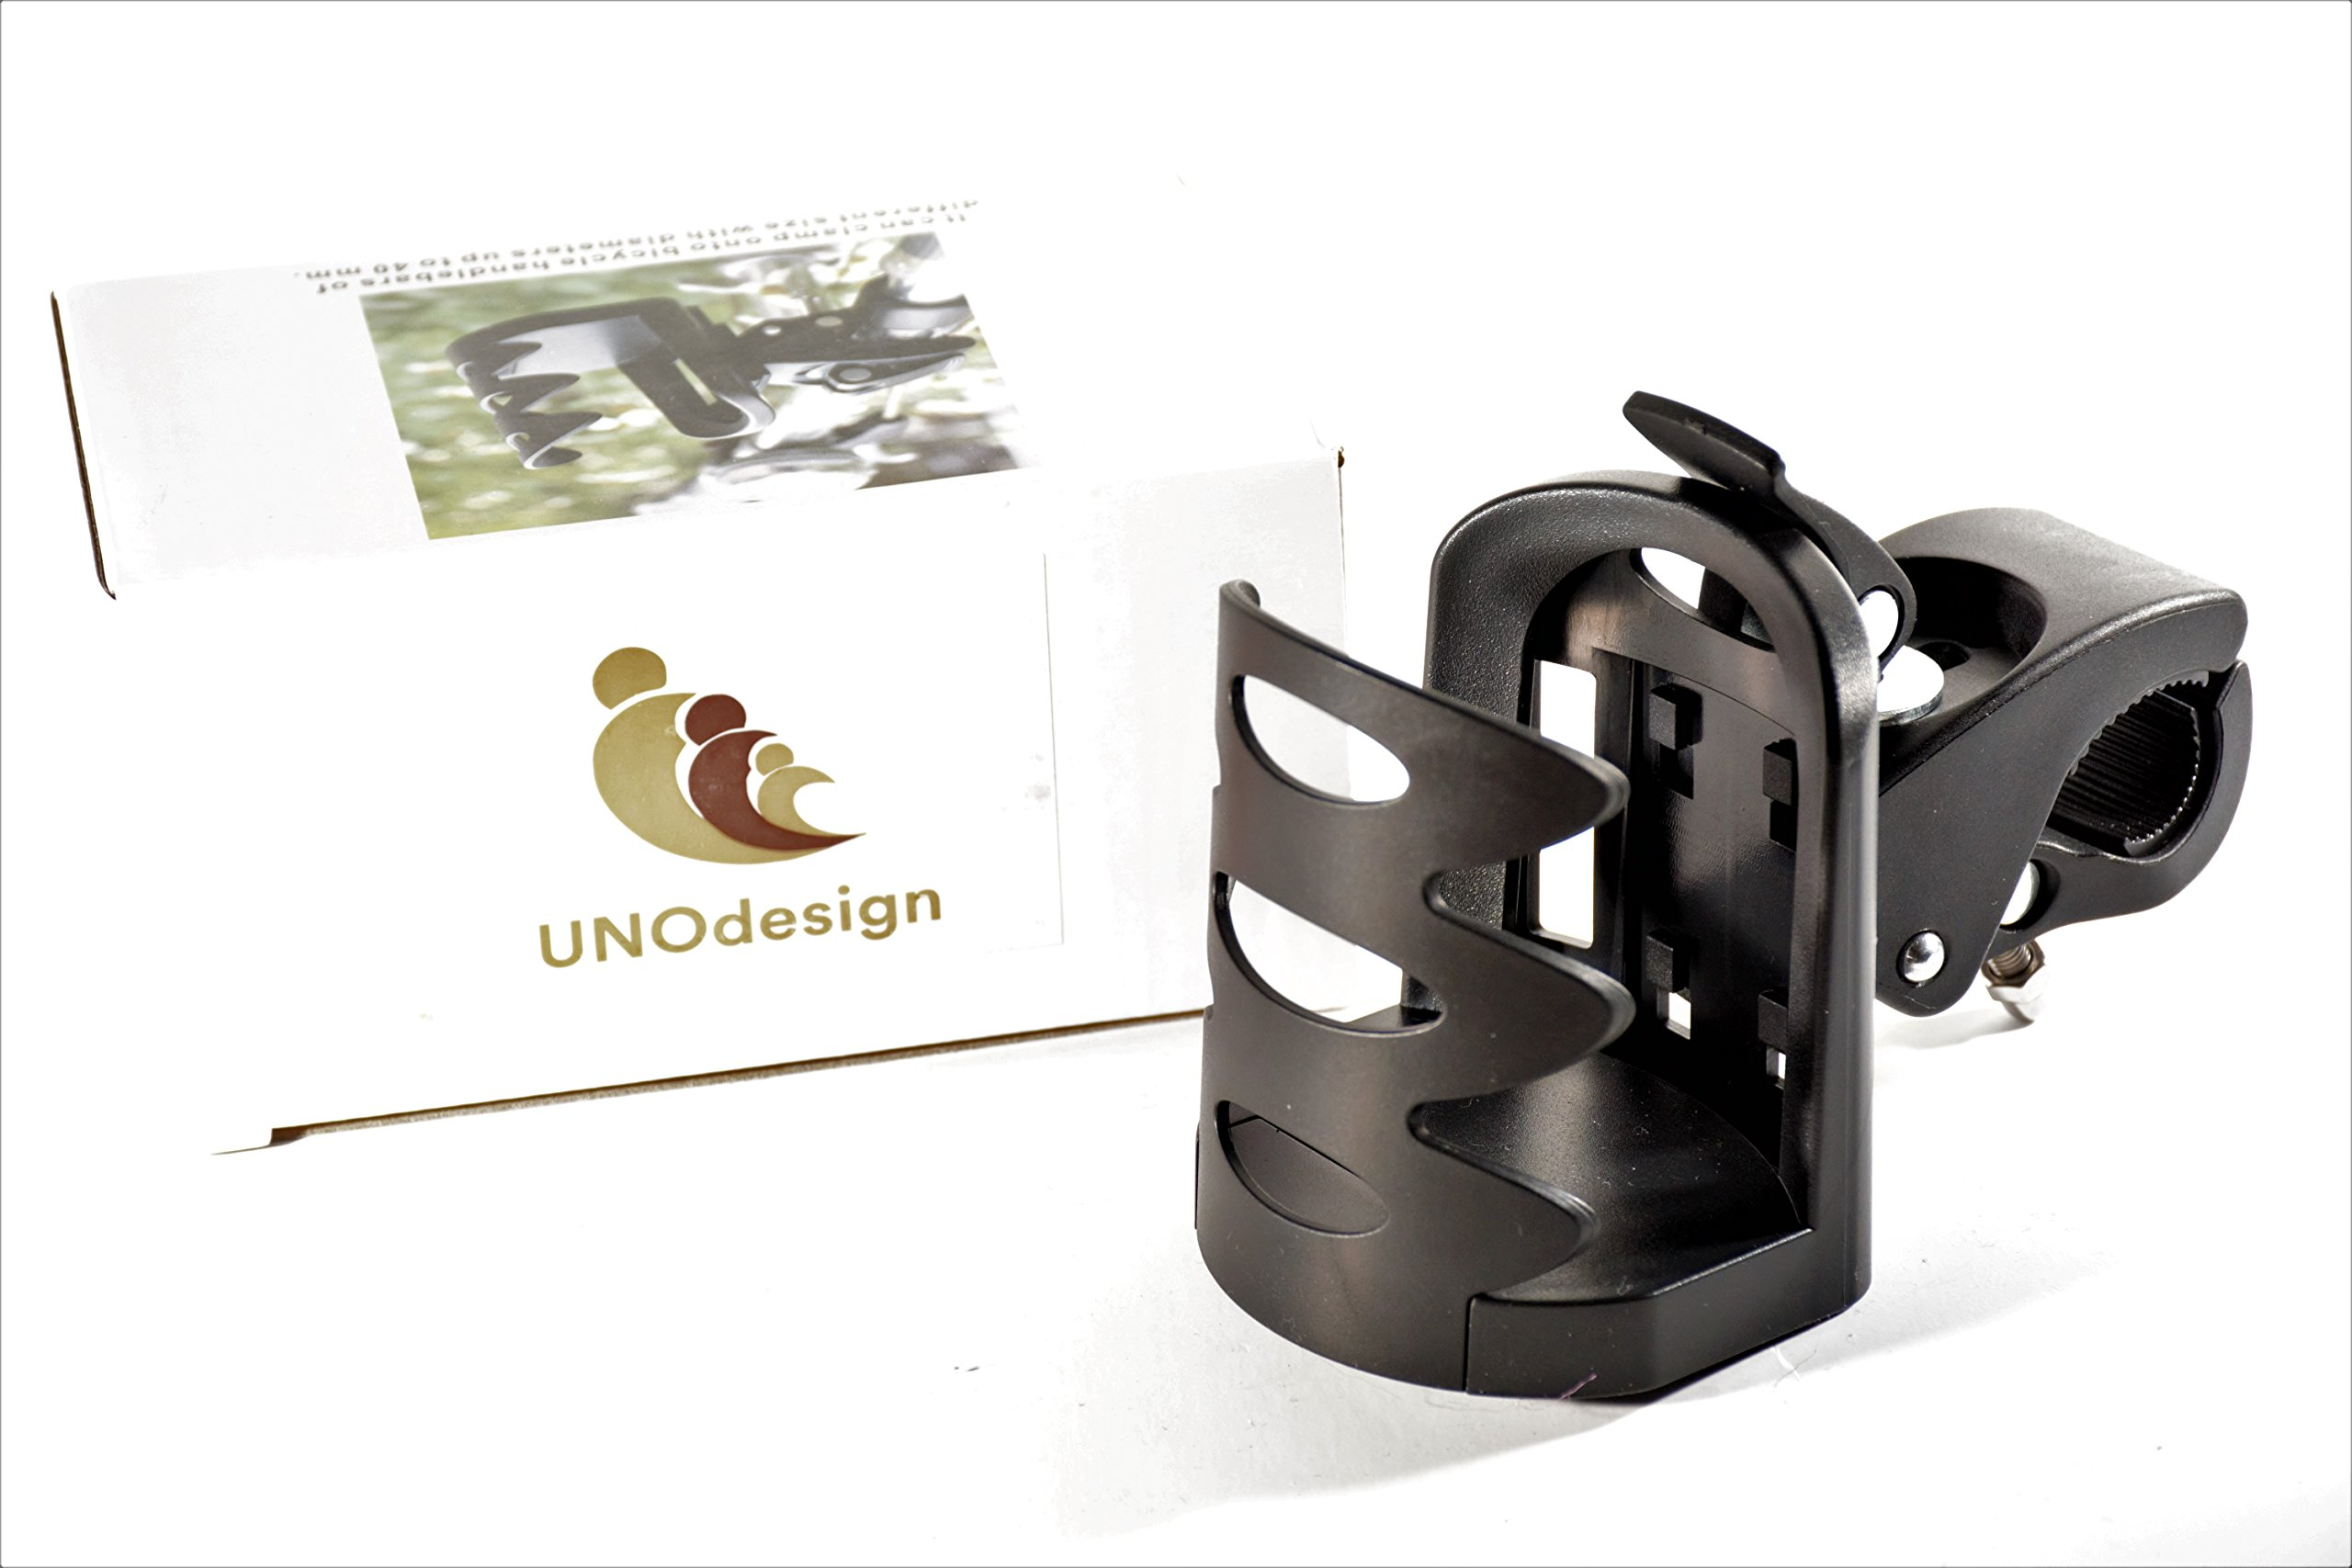 Universal Stroller Cup Holder | Fully Adjustable Attachable Drink Holder Fits All Strollers, Bike, Wheelchair, Pushchair | Sturdy Grip Adjustable Water Bottle Holder by NOUdesign by NOUdesign (Image #4)